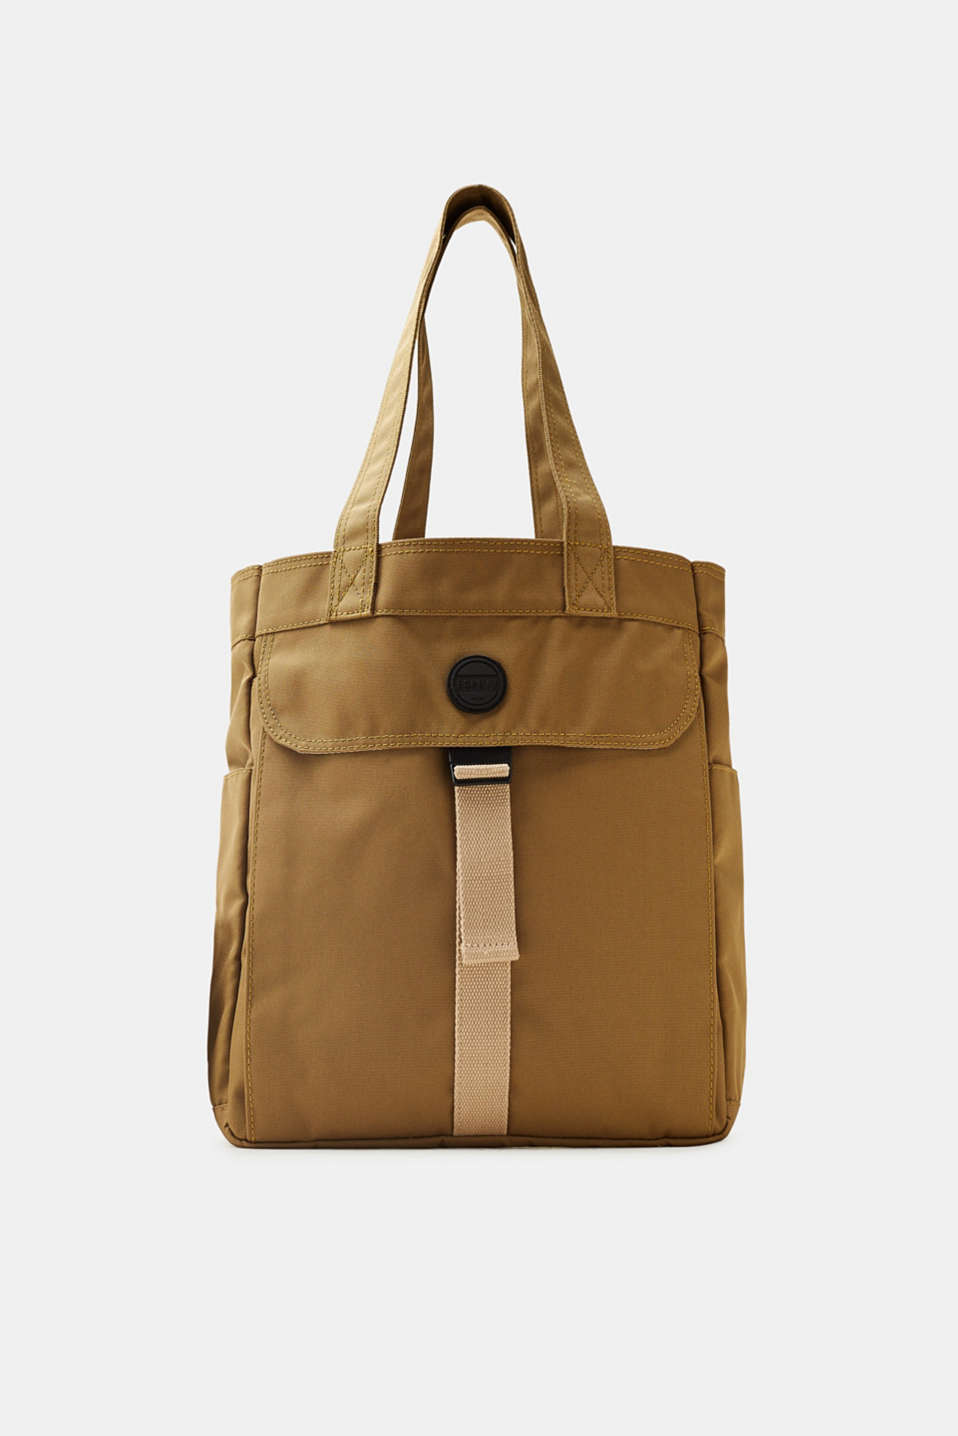 Esprit - Tote bag in robust canvas with a large front pocket